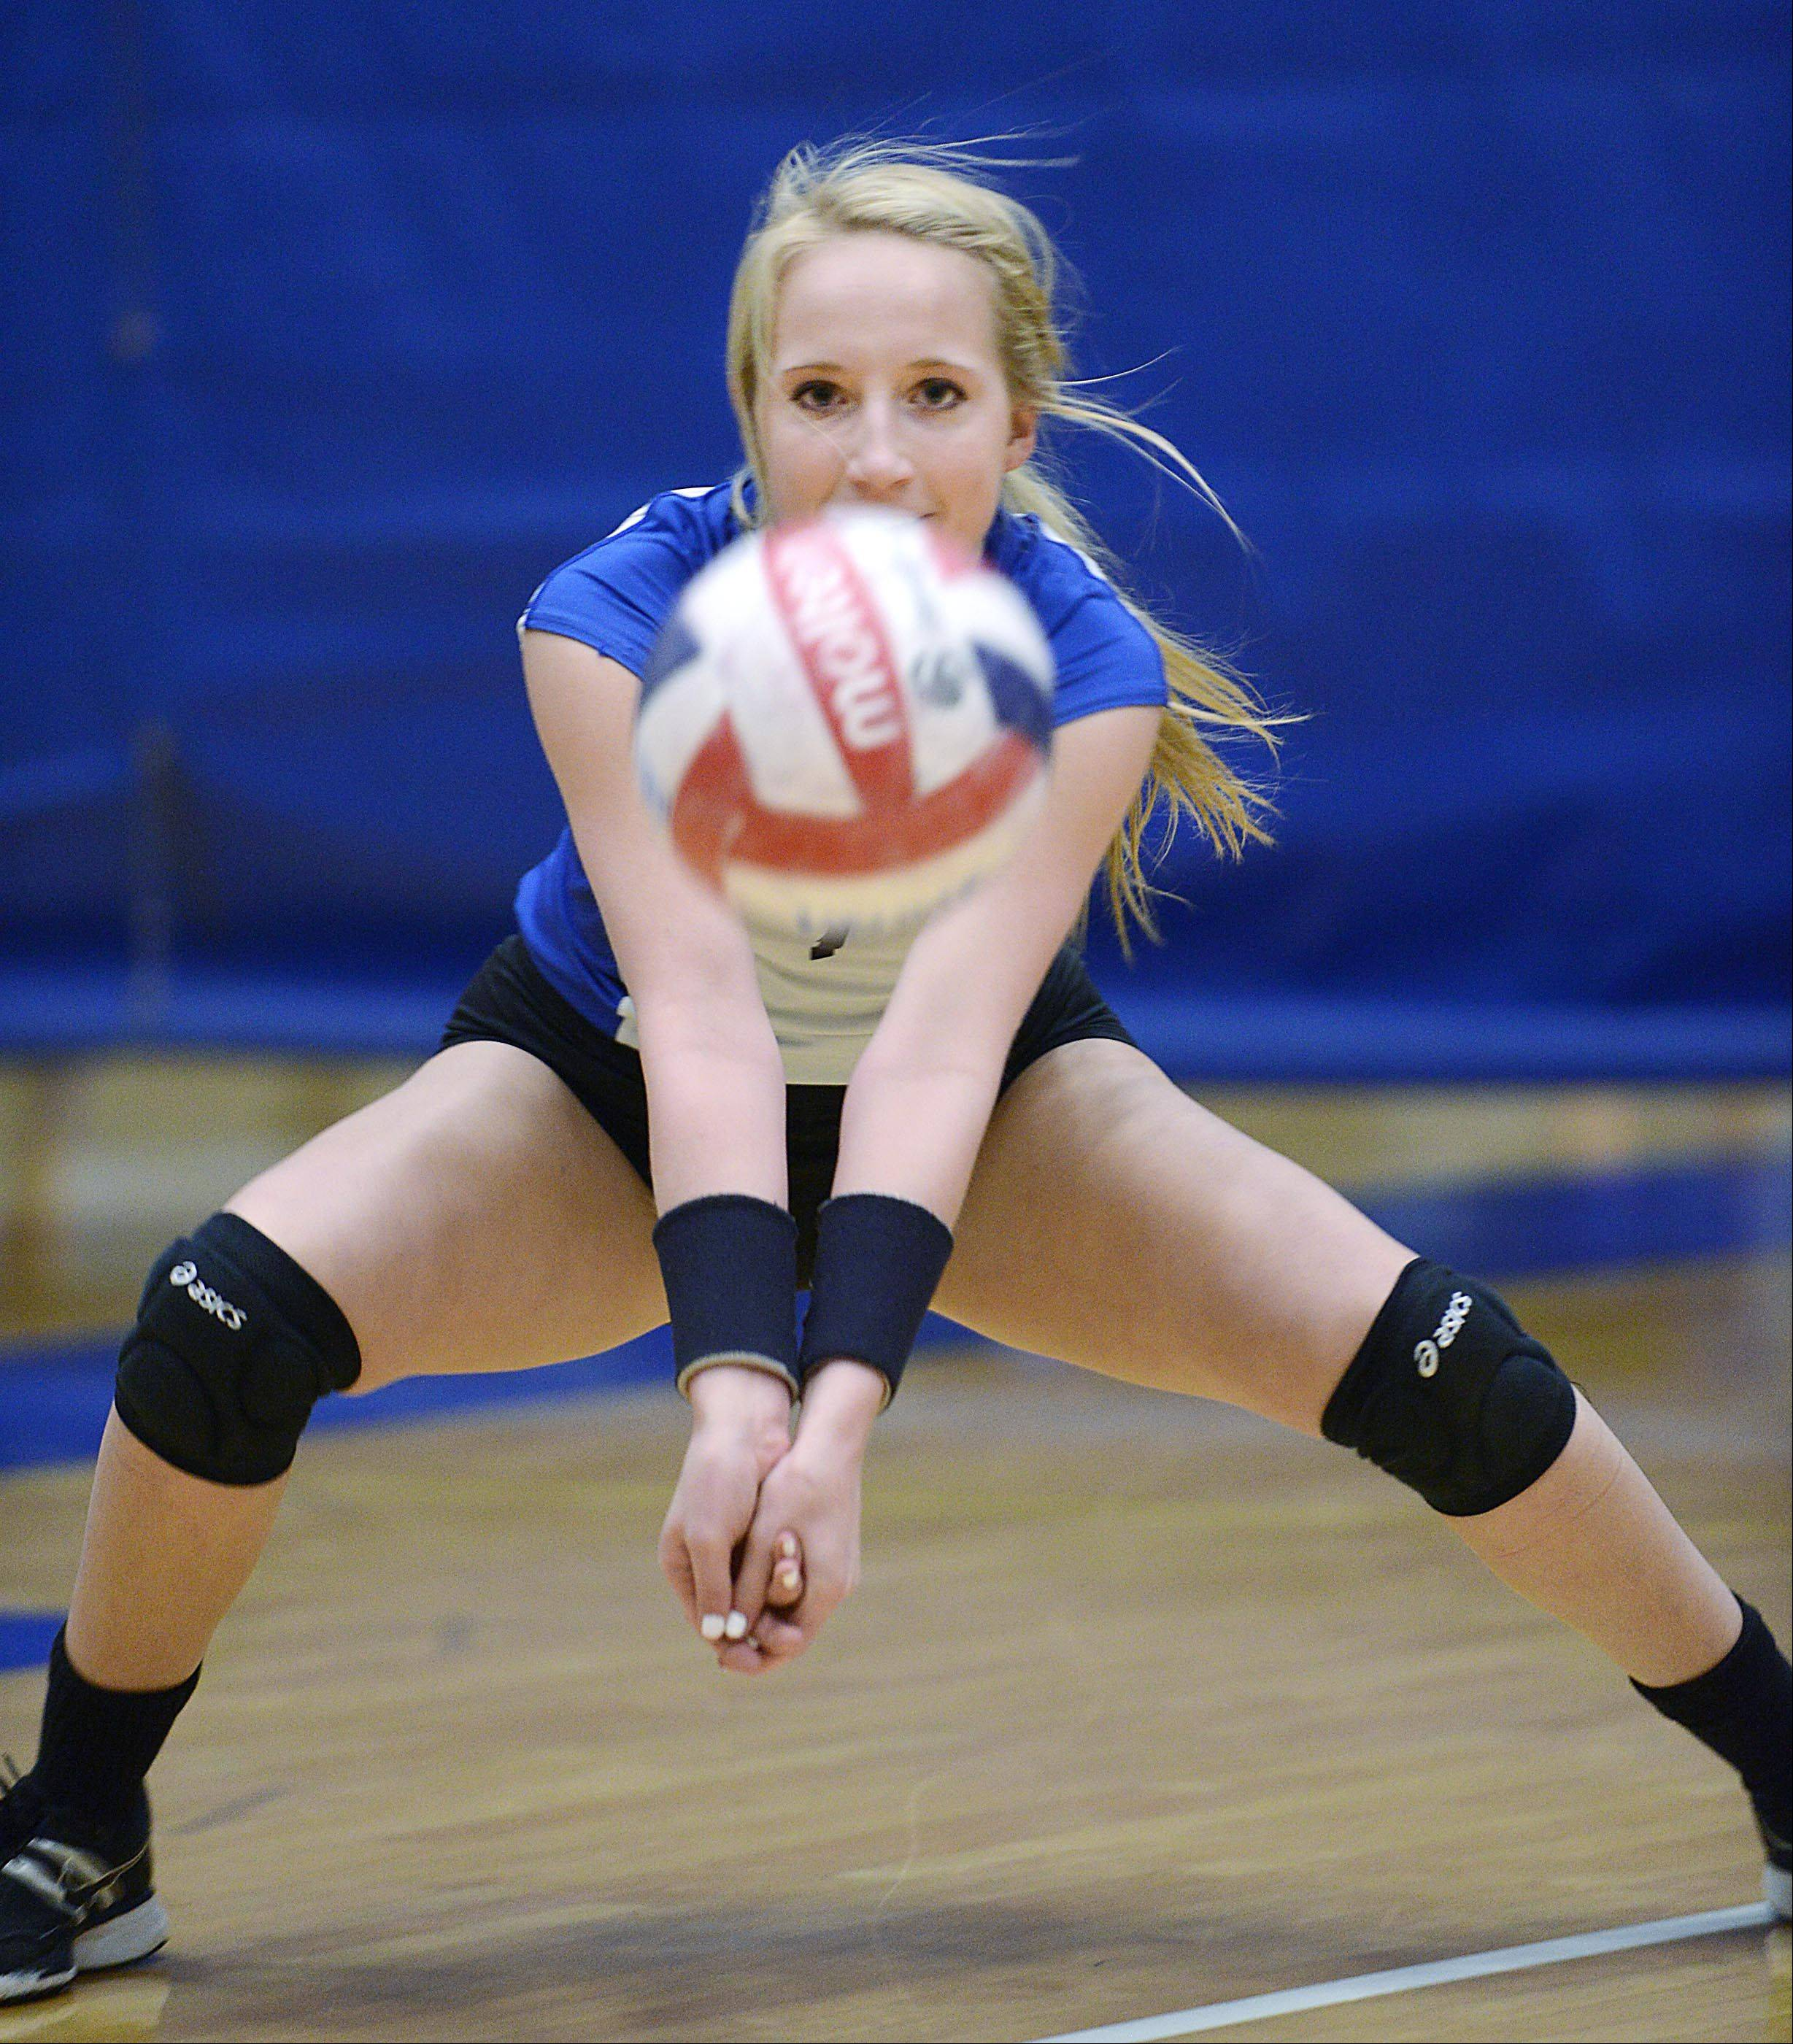 Burlington Central's Allie O'Reilly will play her college volleyball at UIC.